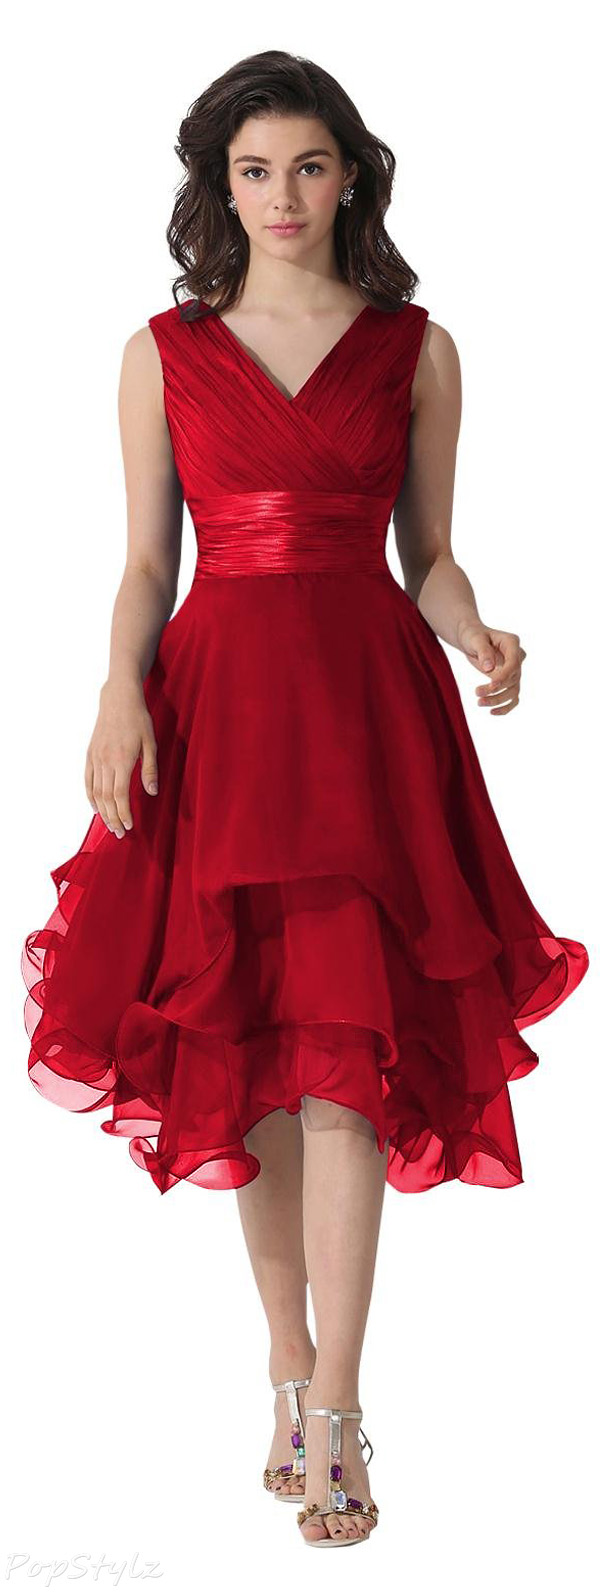 Dora Bridal V-Neck Chiffon Formal Dress